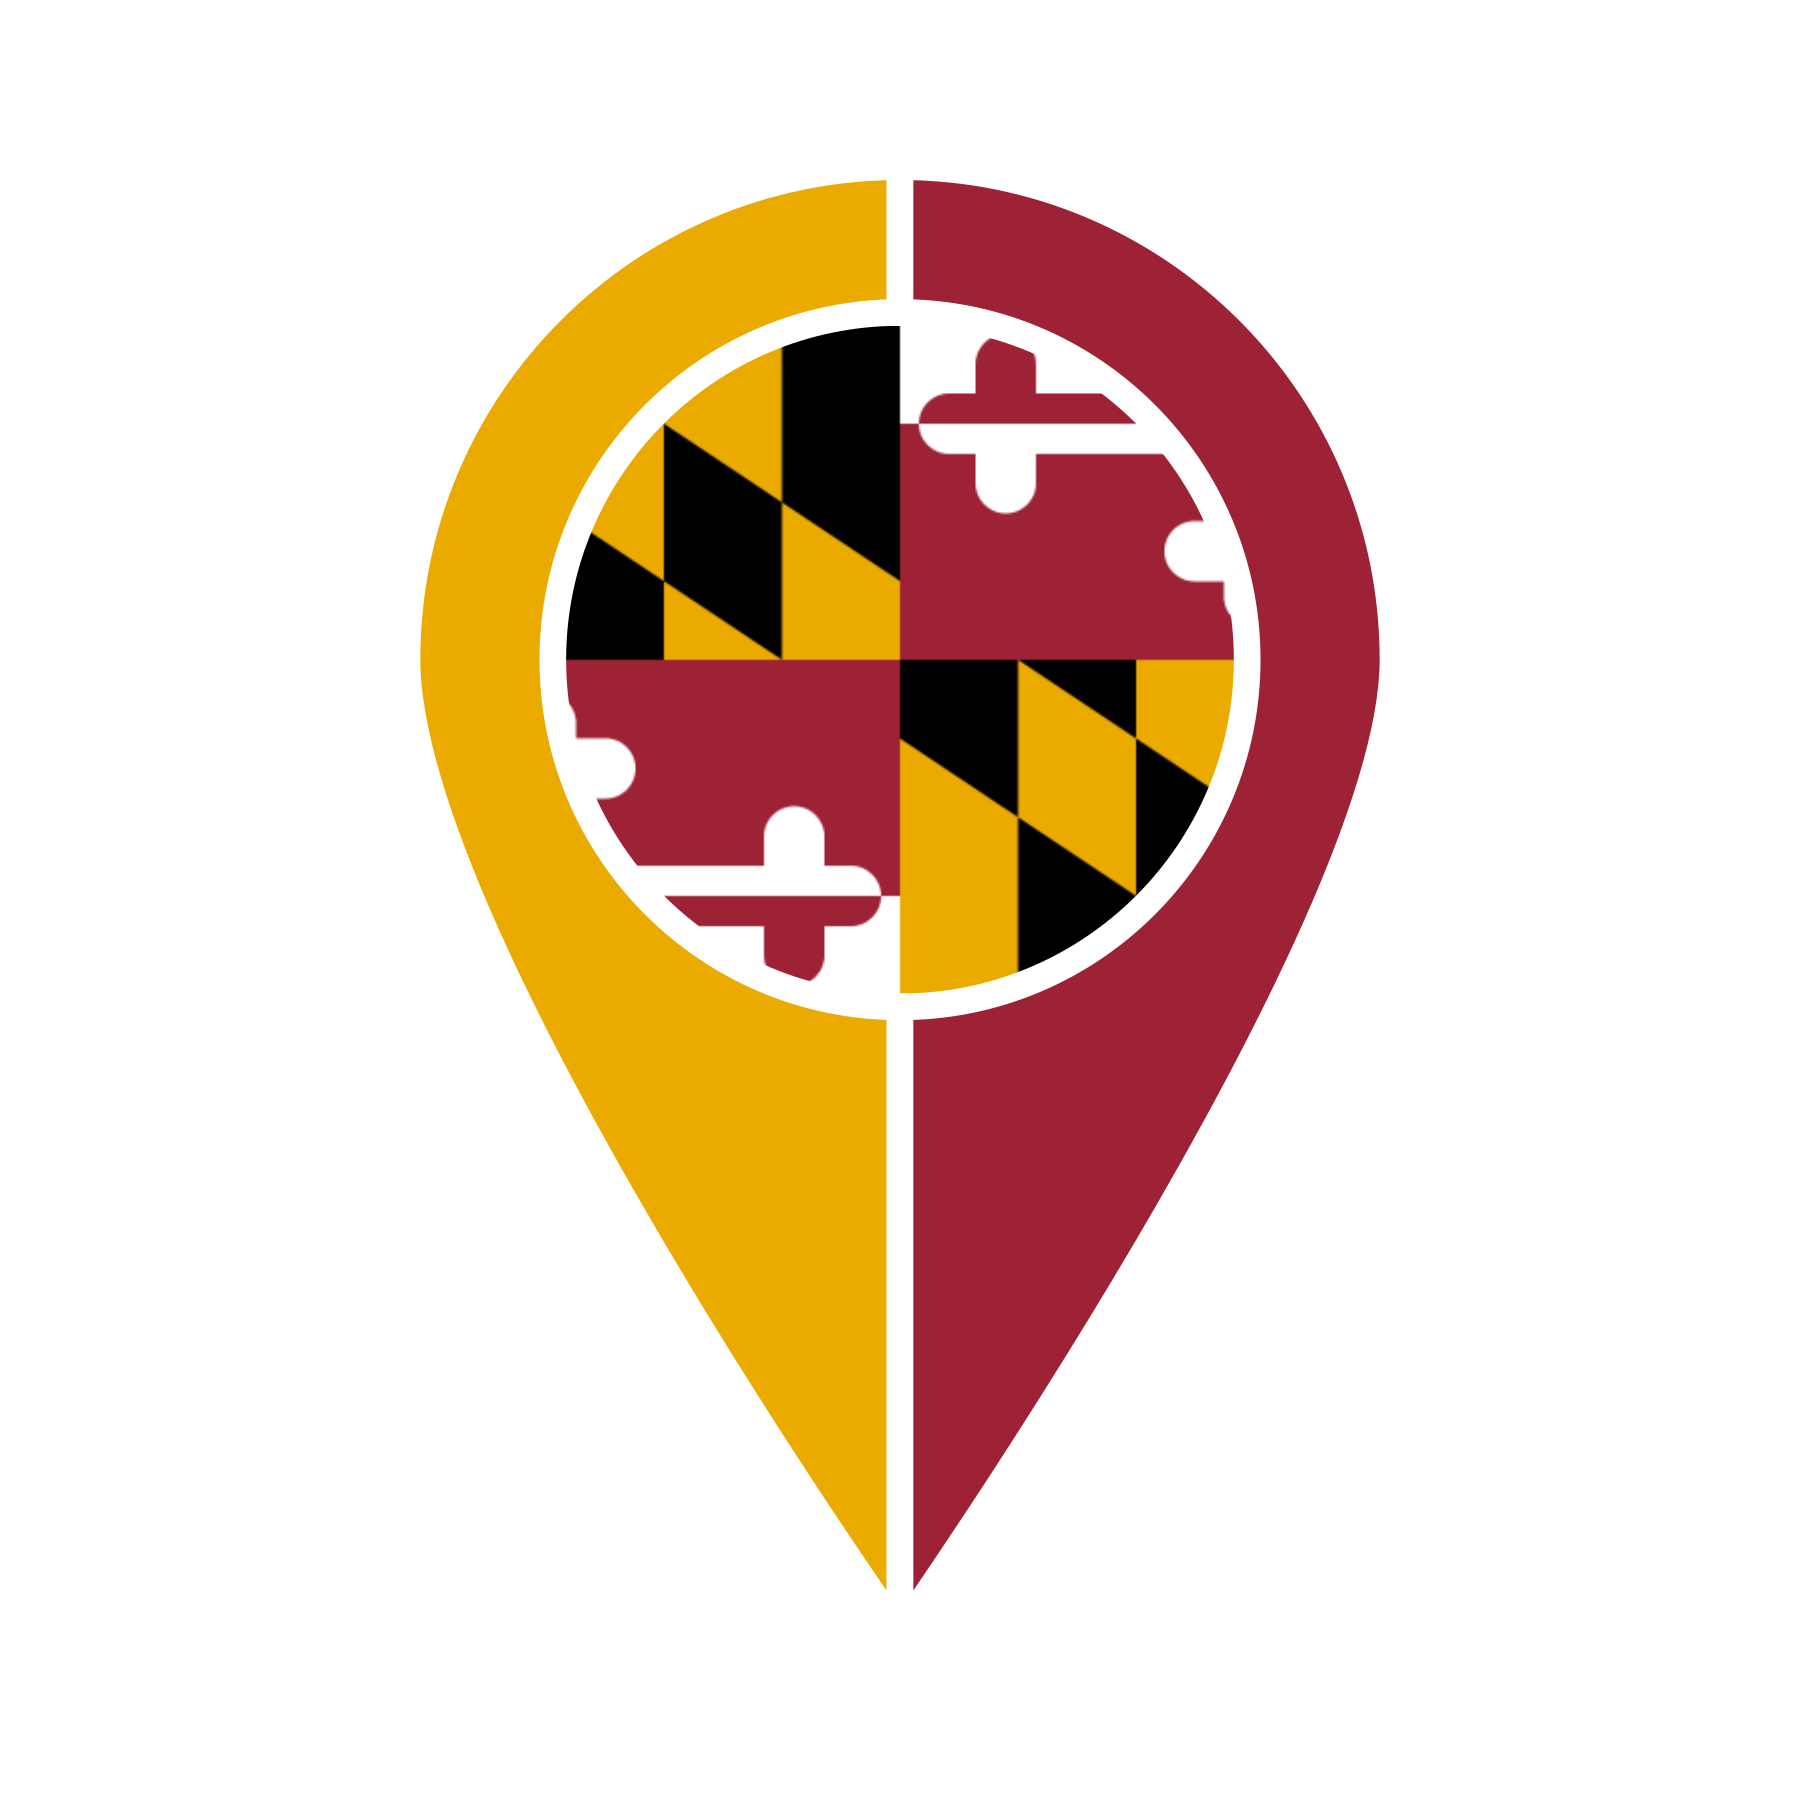 DARUMA TECH TO CREATE MOBILE APP PROMOTING MARYLAND'S AGRICULTURAL BUSINESS INCLUDING DISTILLERIES, WINERIES, BREWERIES